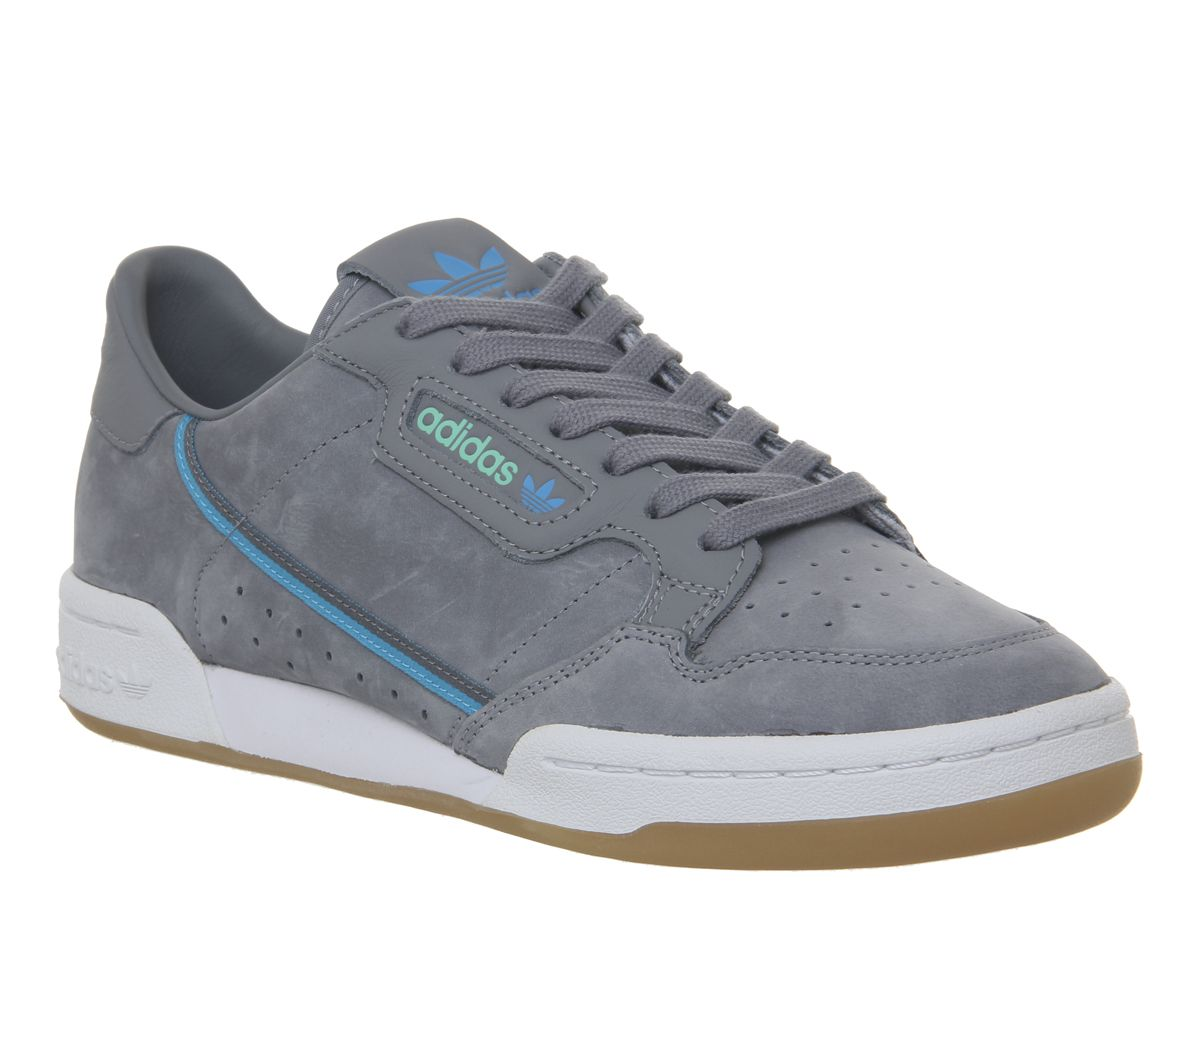 Details about Adidas Continental 80s Sneakers Grey Green Blue Rubber tfl-  show original title